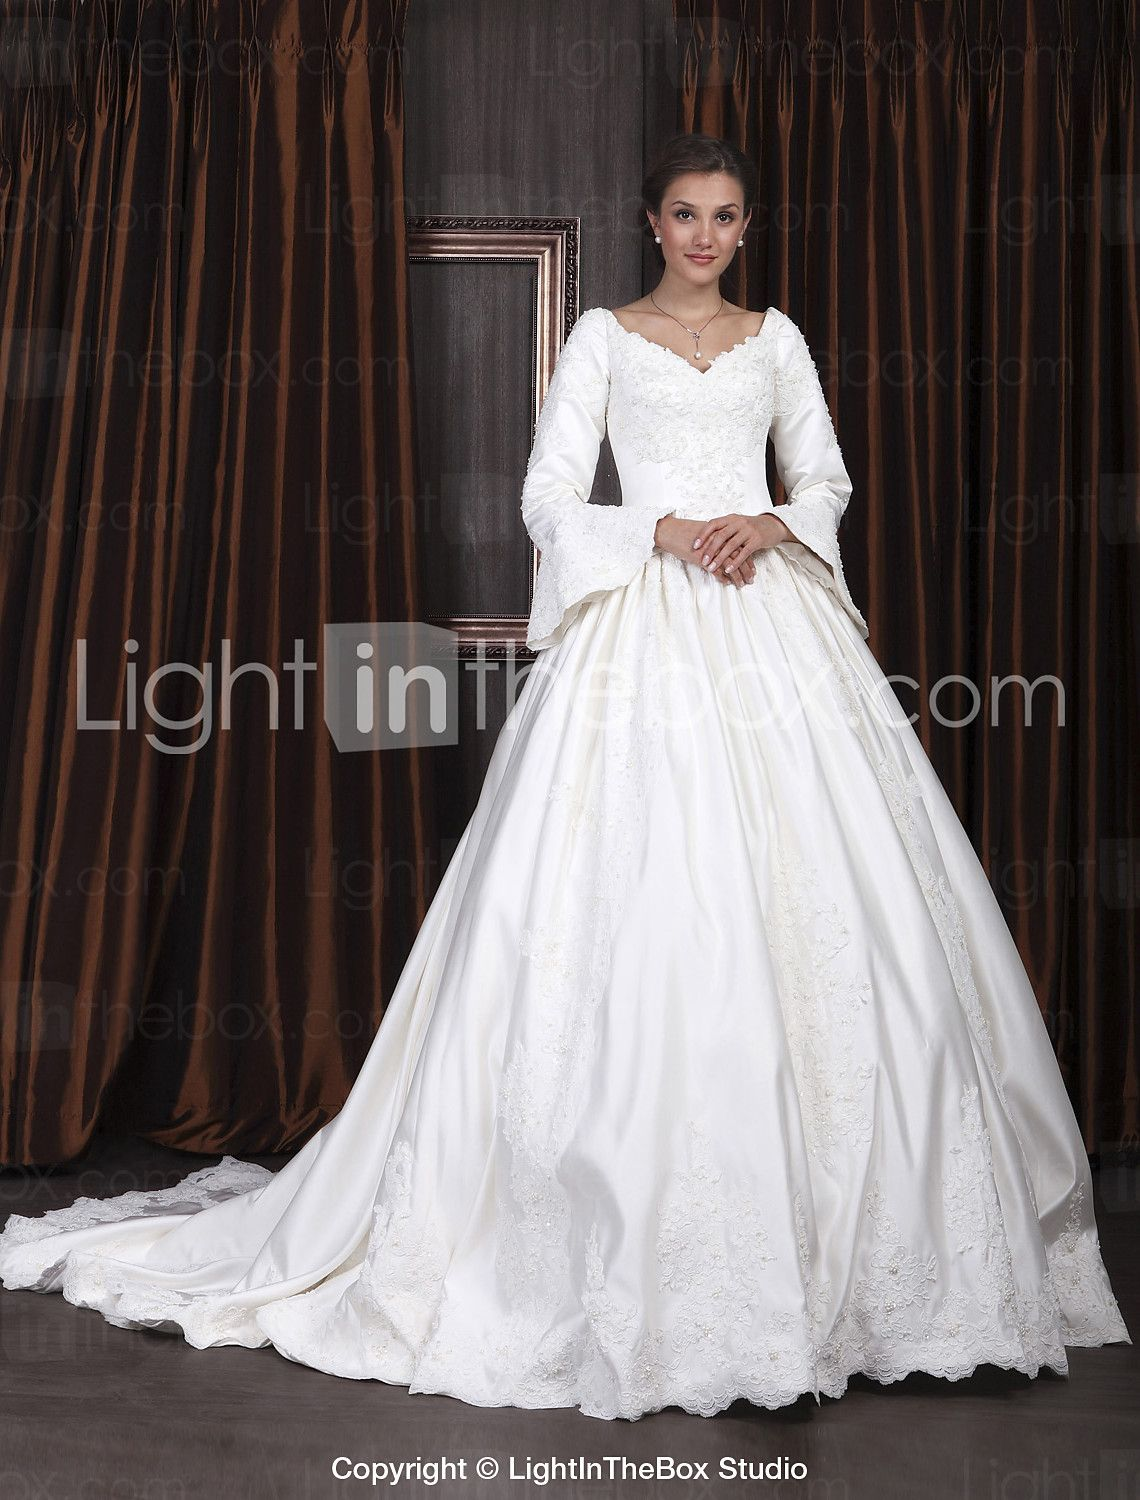 252 99 Ball Gown Wedding Dresses V Neck Chapel Train Satin Long Sleeve With Beading Appliques 2020 Poet Sleeve Long Sleeve Ball Gown Wedding Dress Ball Gown Wedding Dress Modest Wedding Dresses [ 1500 x 1140 Pixel ]